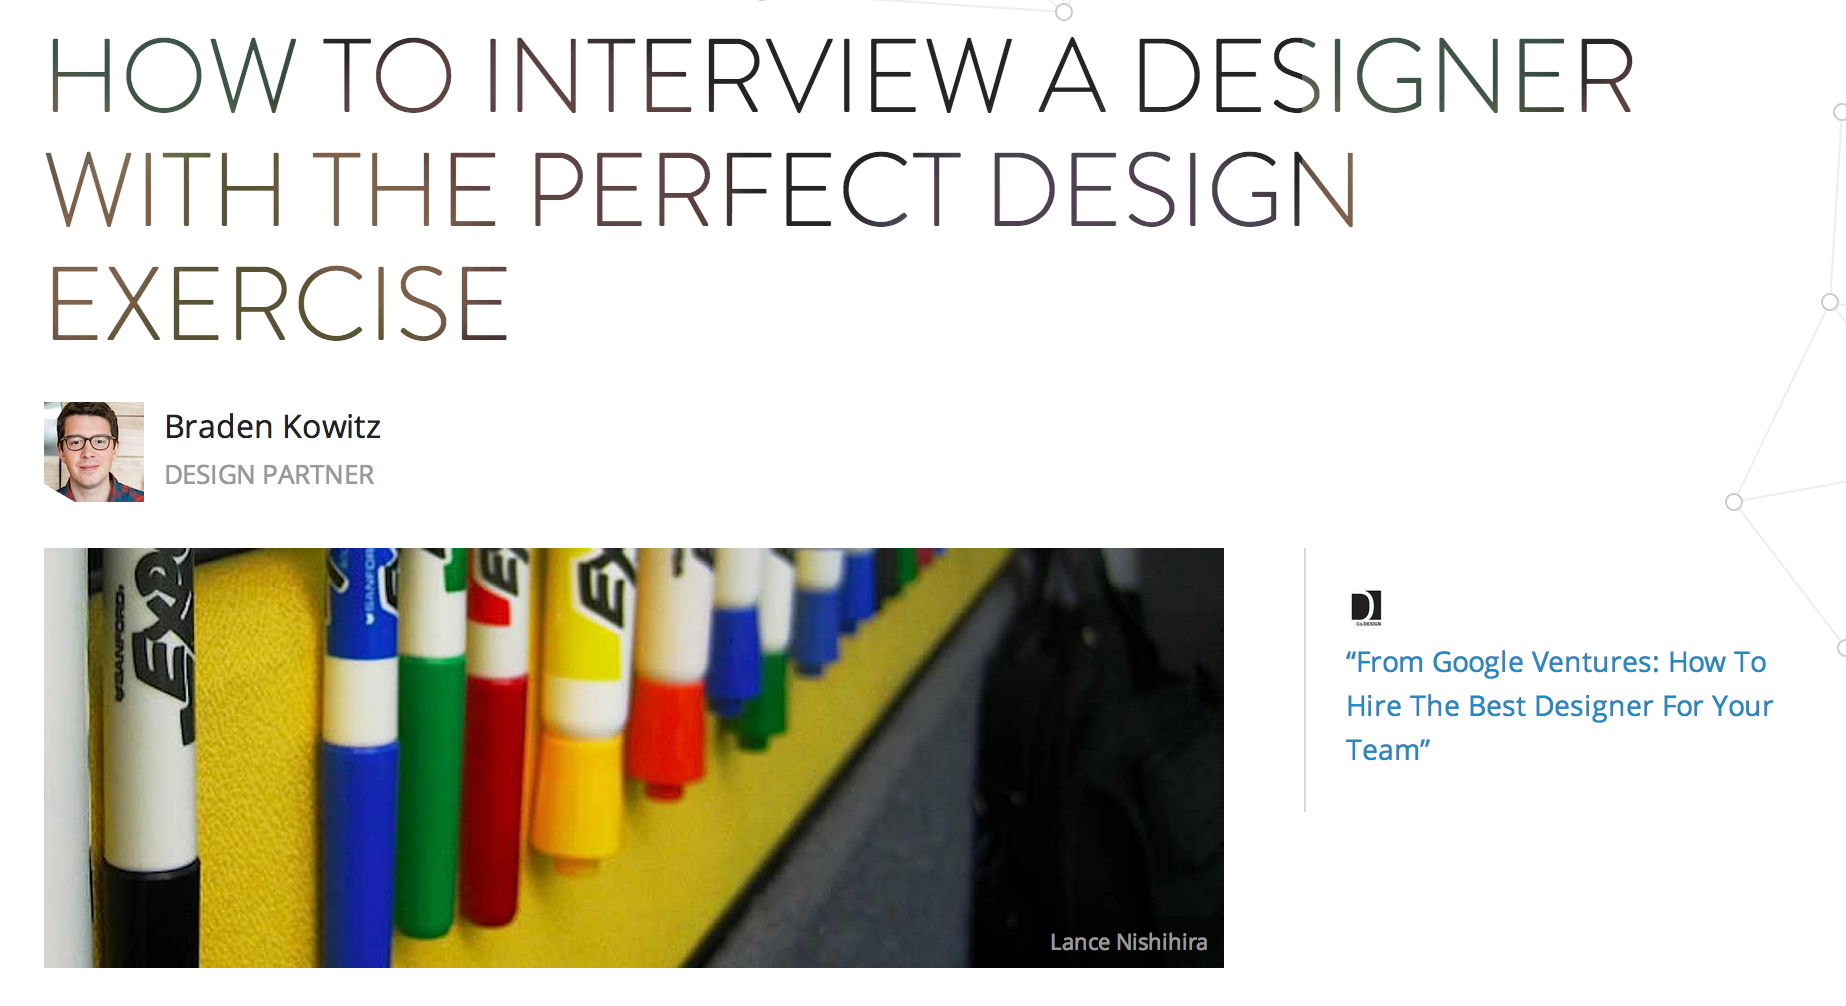 how to interview a designer the perfect design exercise design exercise